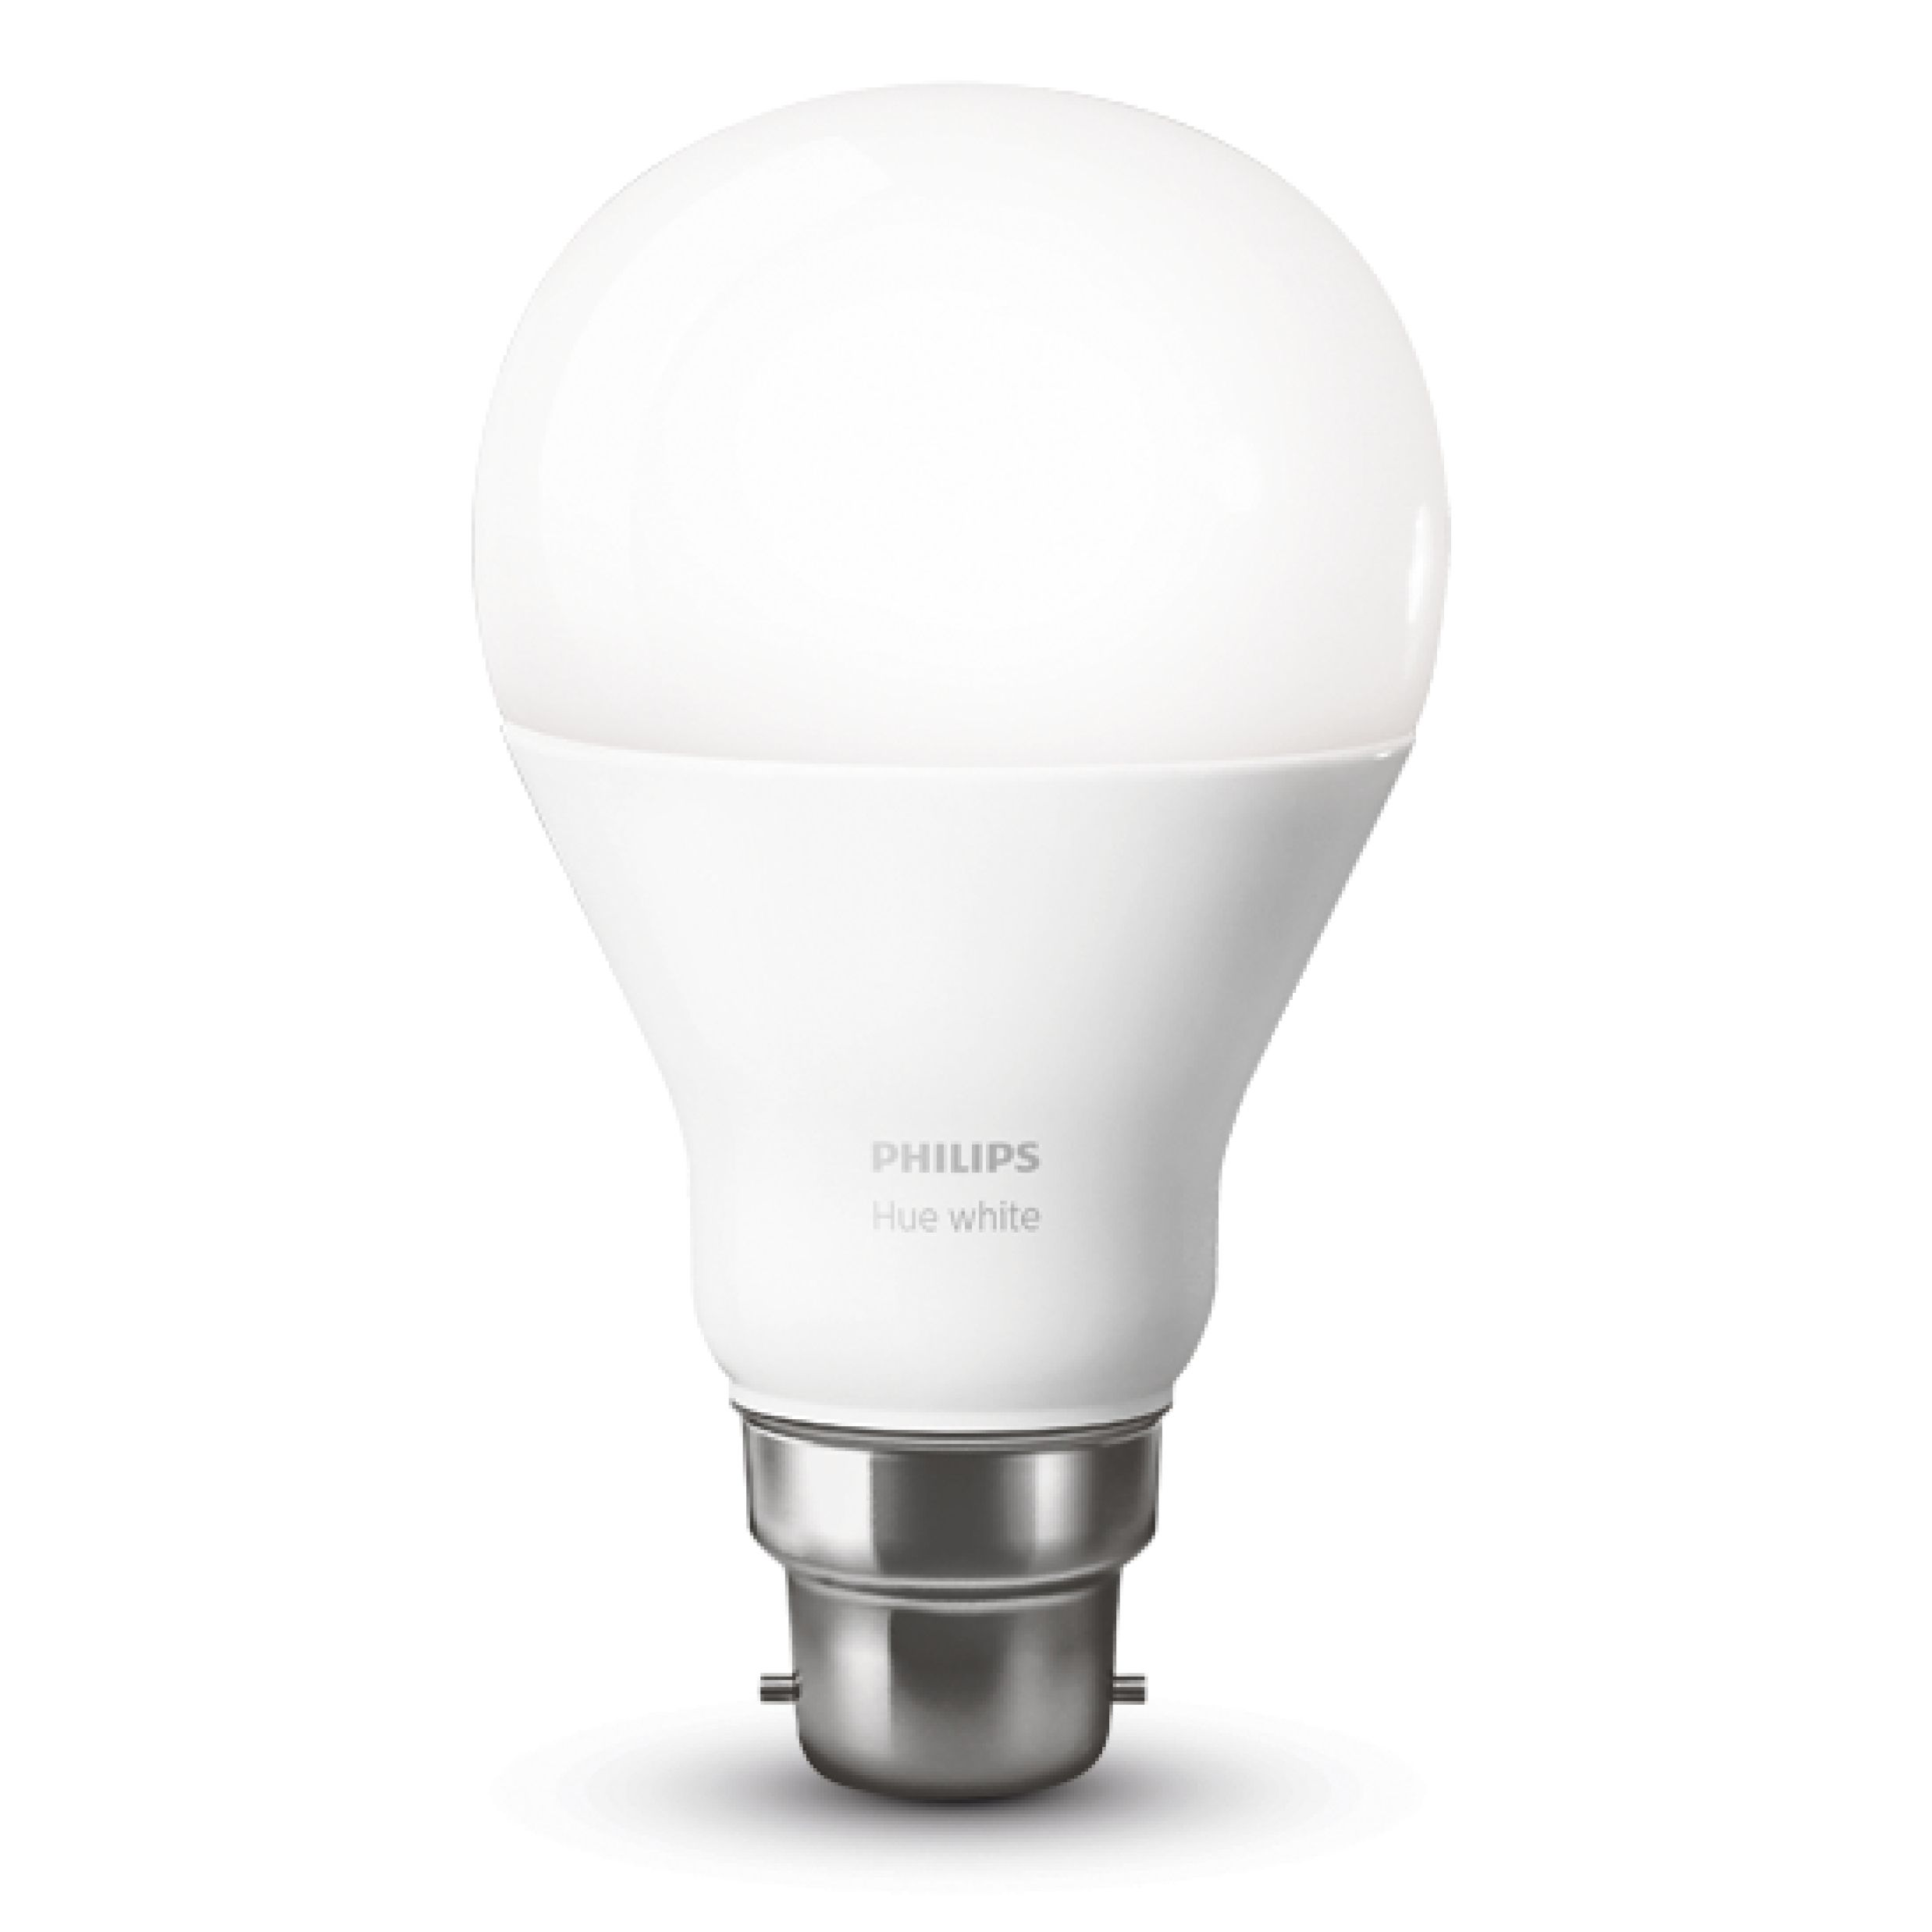 Philips Hue Led Smart Light Bulb Bayonet Cap B22